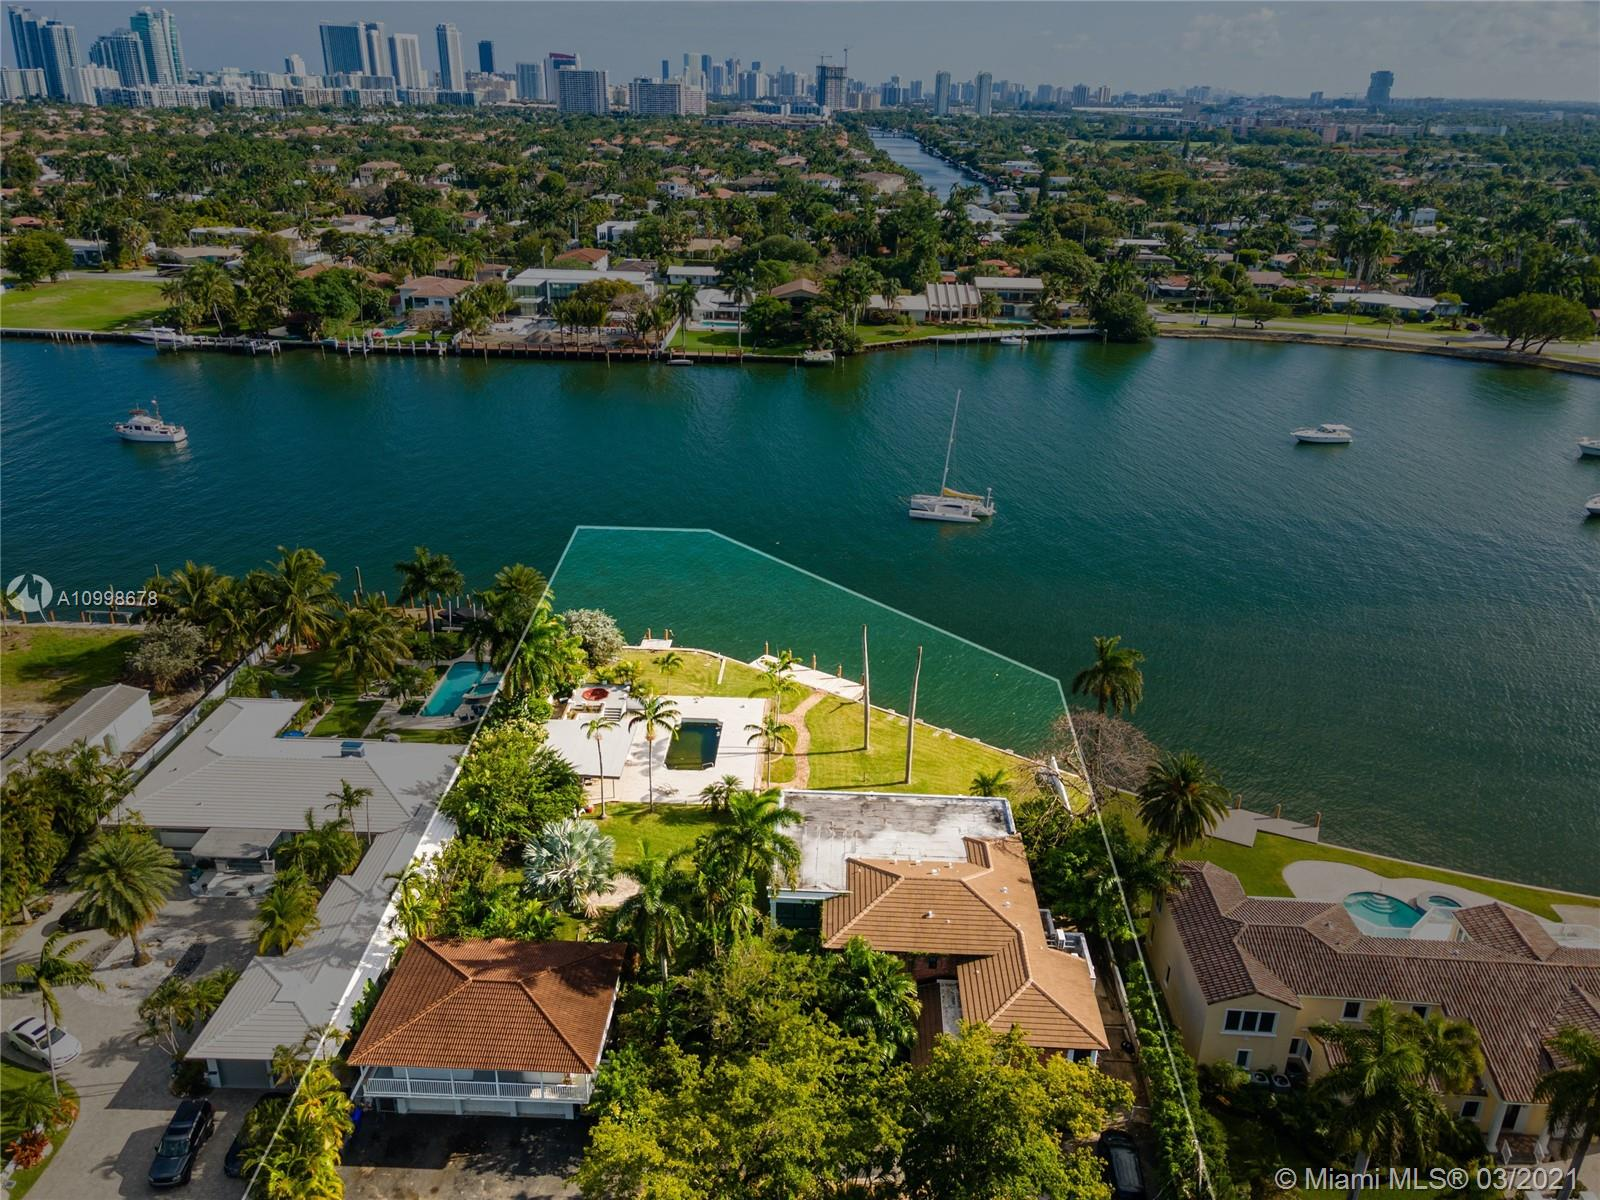 Prime waterfront land for sale to develop or custom build your dream house. Lot is over 30,000 sq ft, facing south, with 150 ft on the water with unobstructed views and access to intracoastal. Capable of accommodating large vessels. Just minutes from the beach.